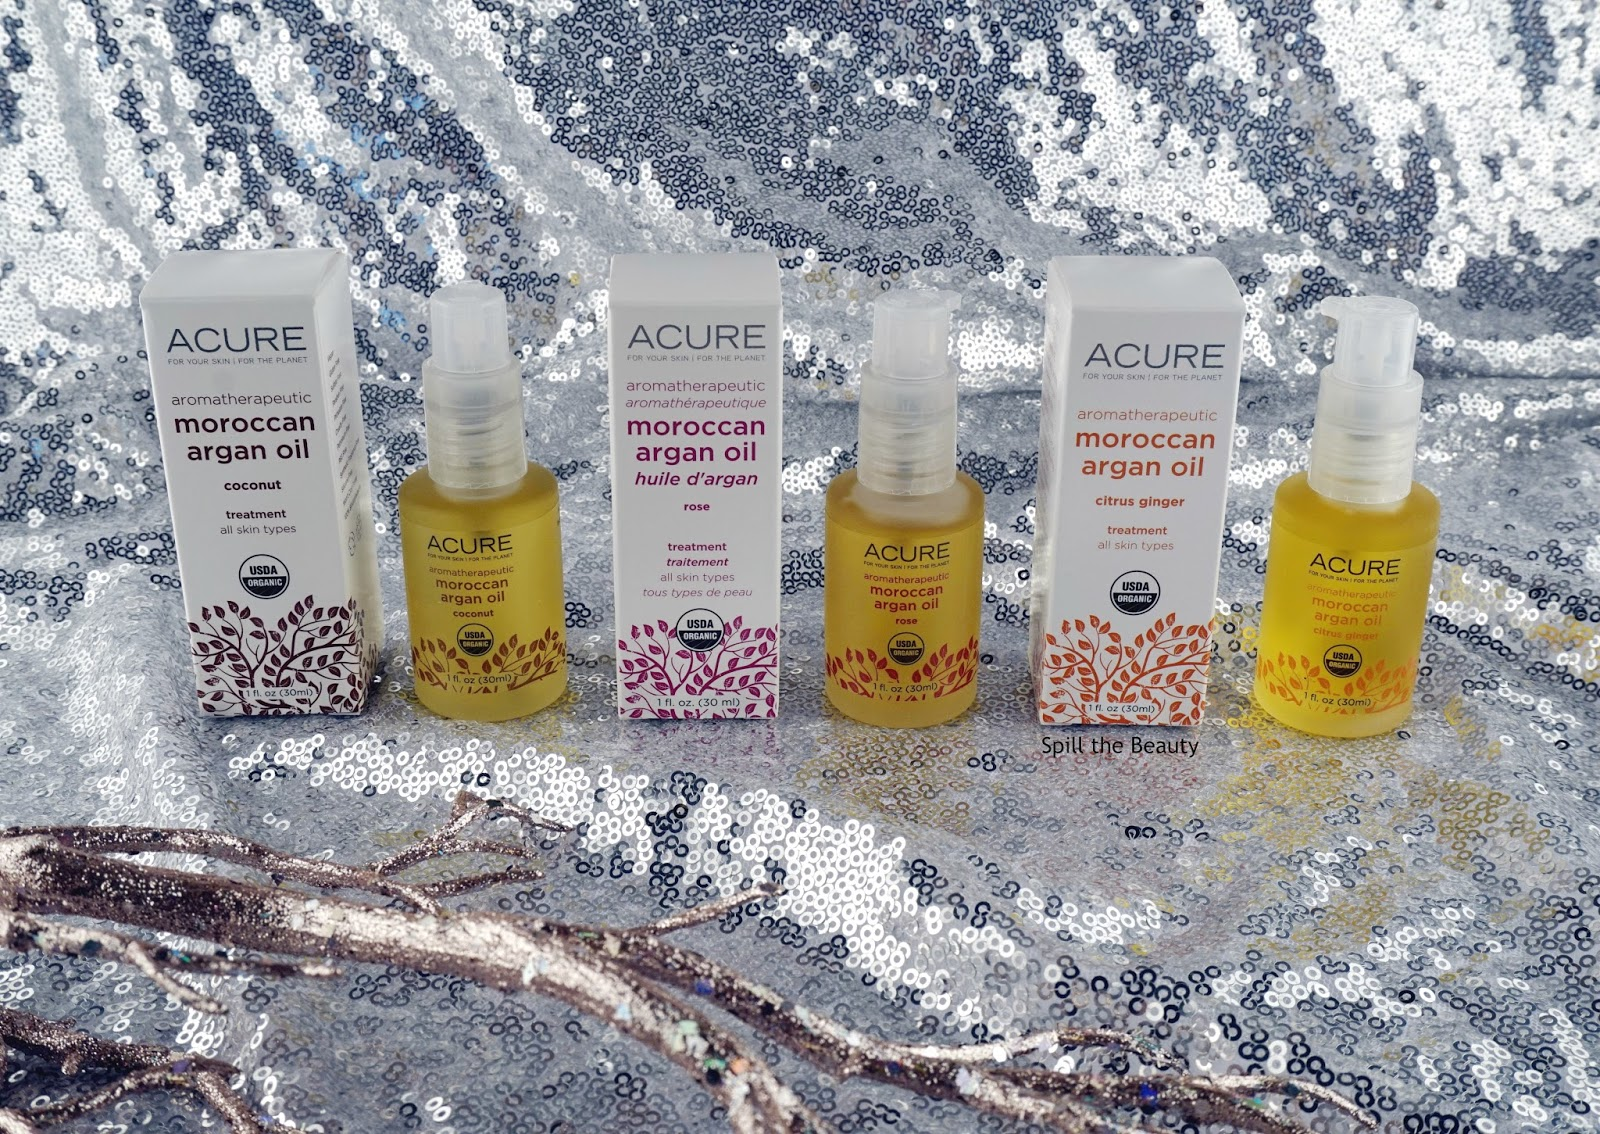 acure aromatherapeutic moroccan argan oils review